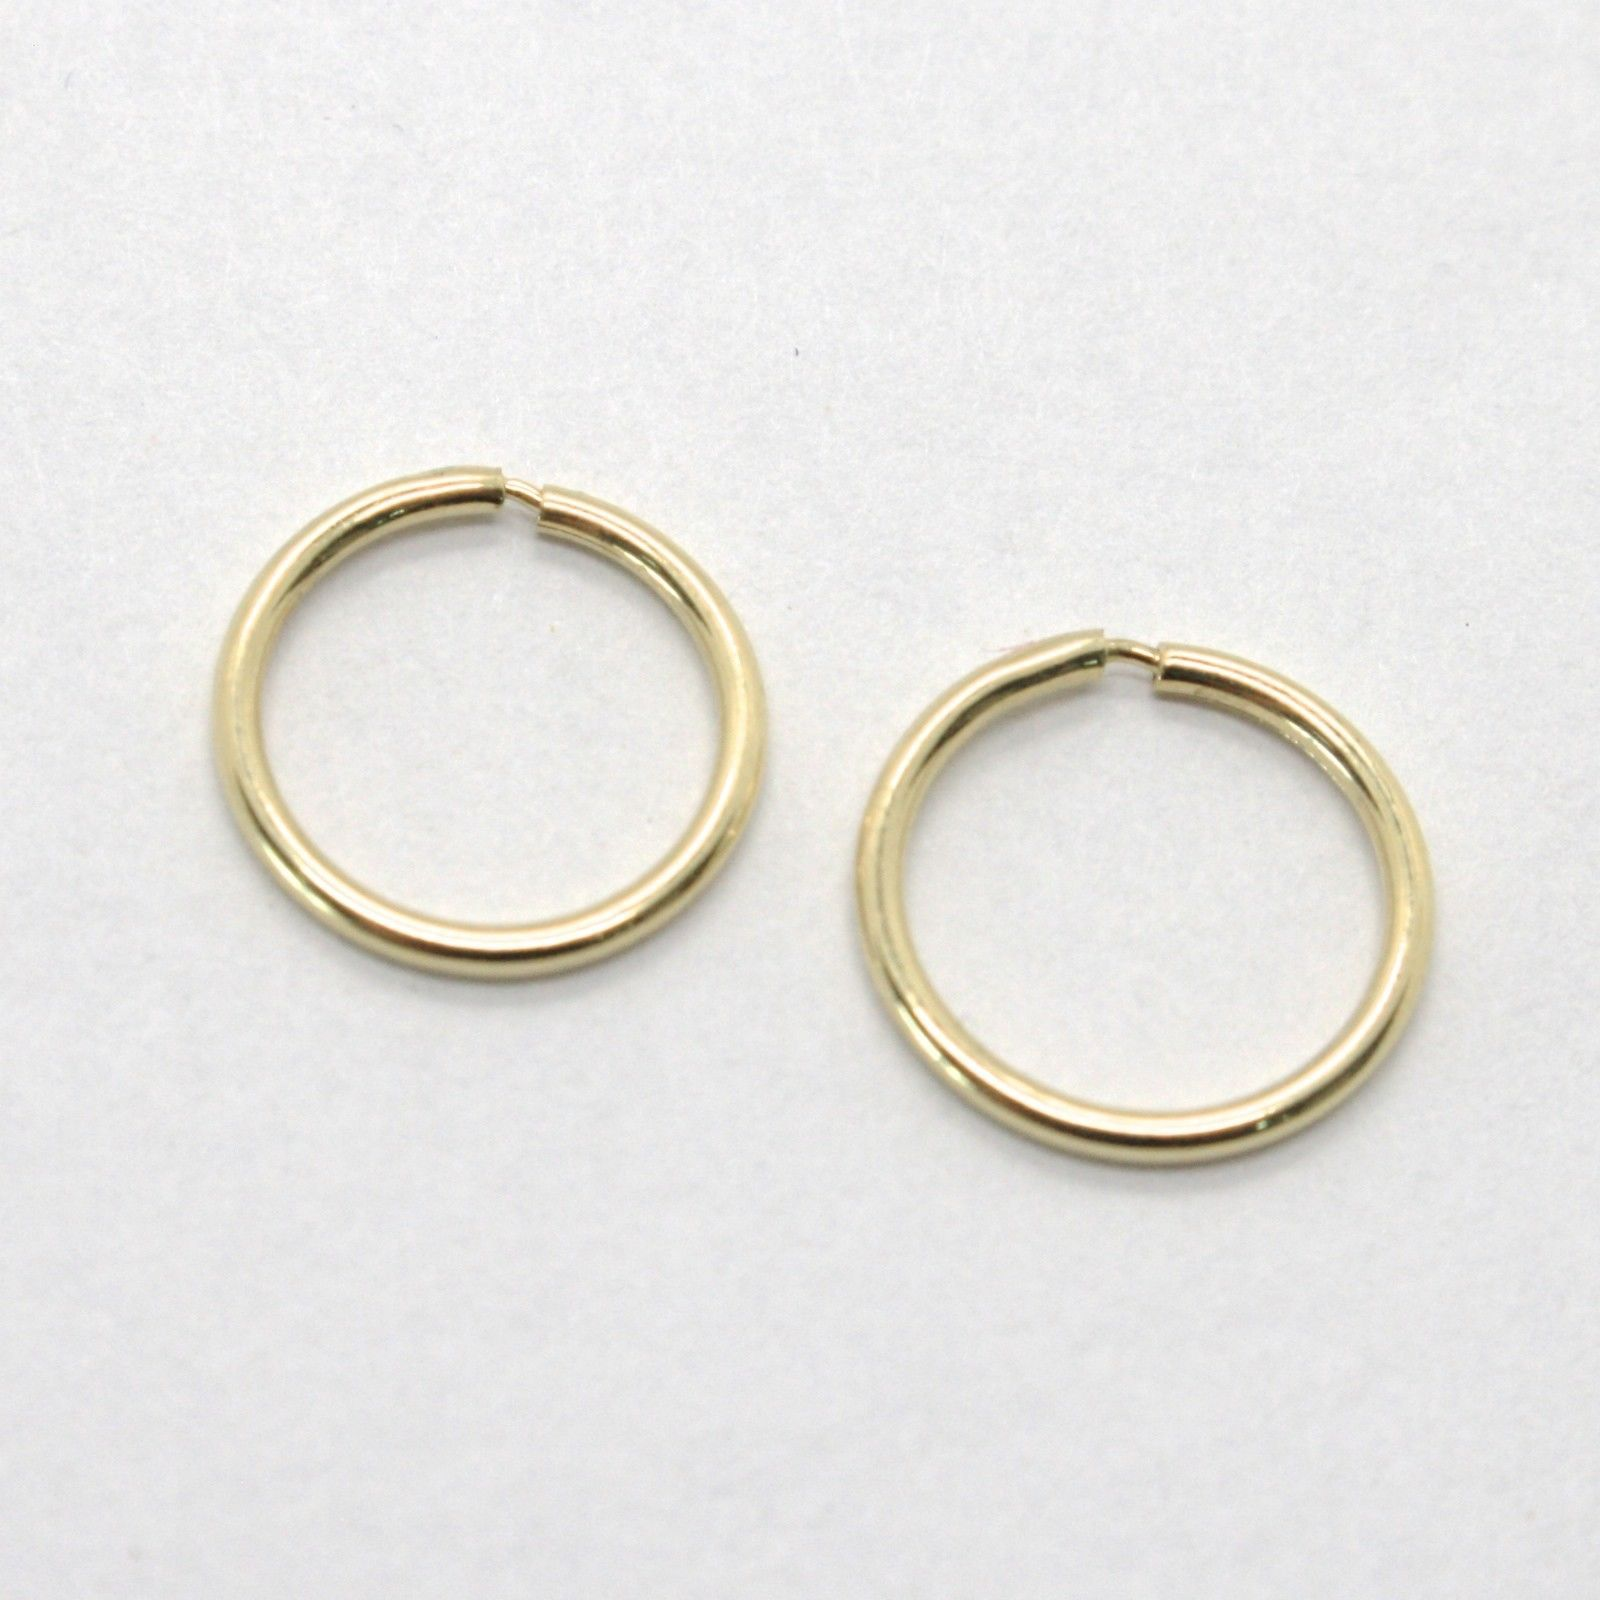 18K YELLOW GOLD ROUND CIRCLE HOOP EARRINGS DIAMETER 8 MM x 1 MM, MADE IN ITALY